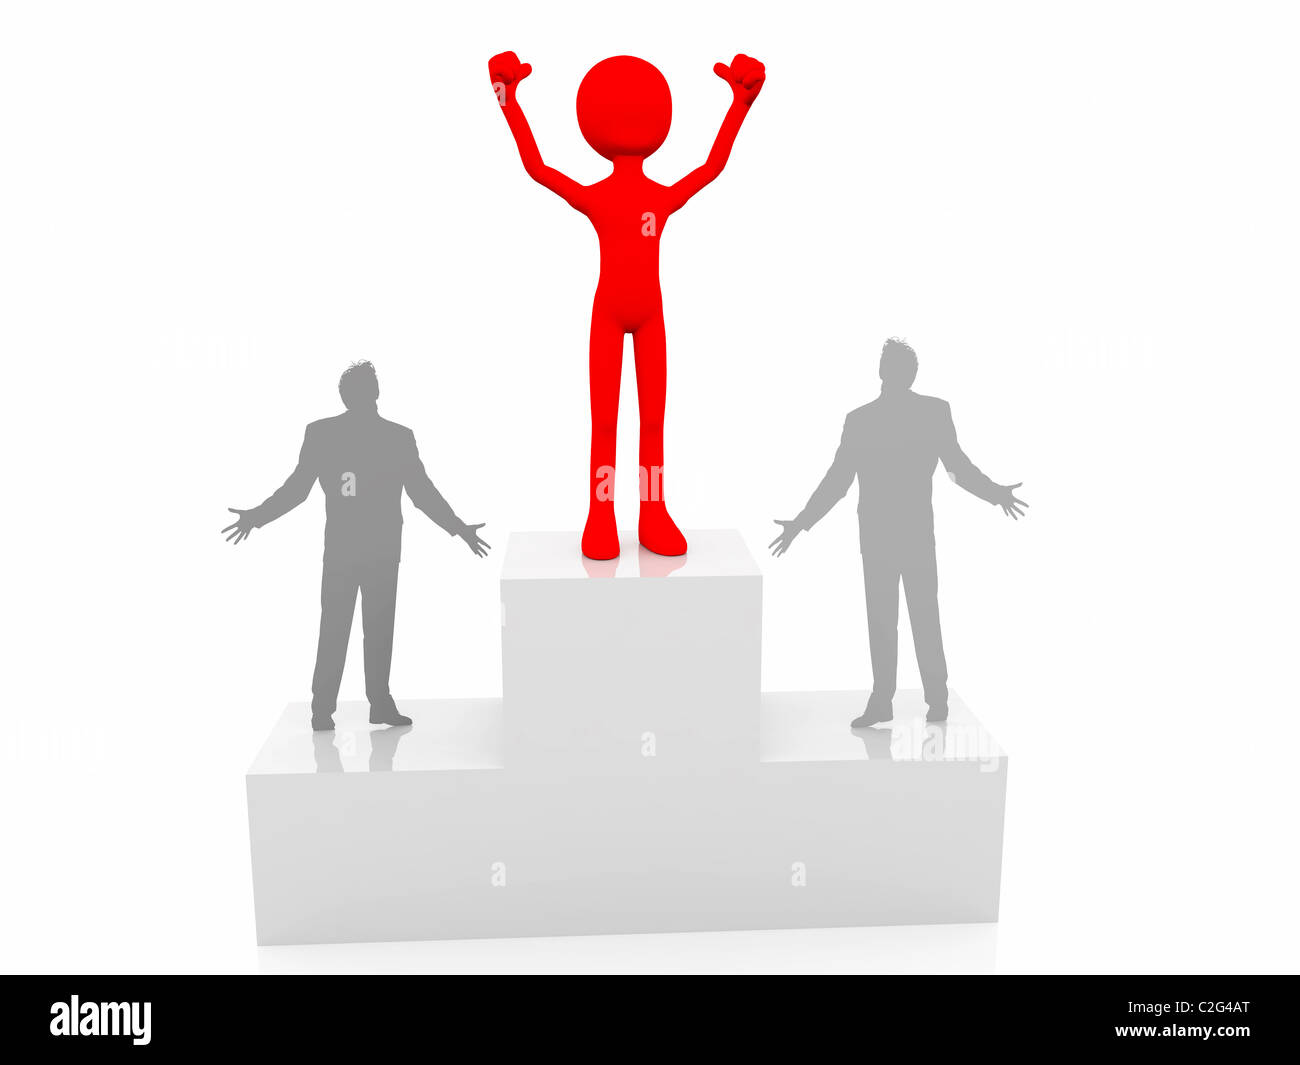 Blank person takes 1st place. Blank person standing proud. Achievement with distinction. Best. Greatest. Top. Top - Stock Image